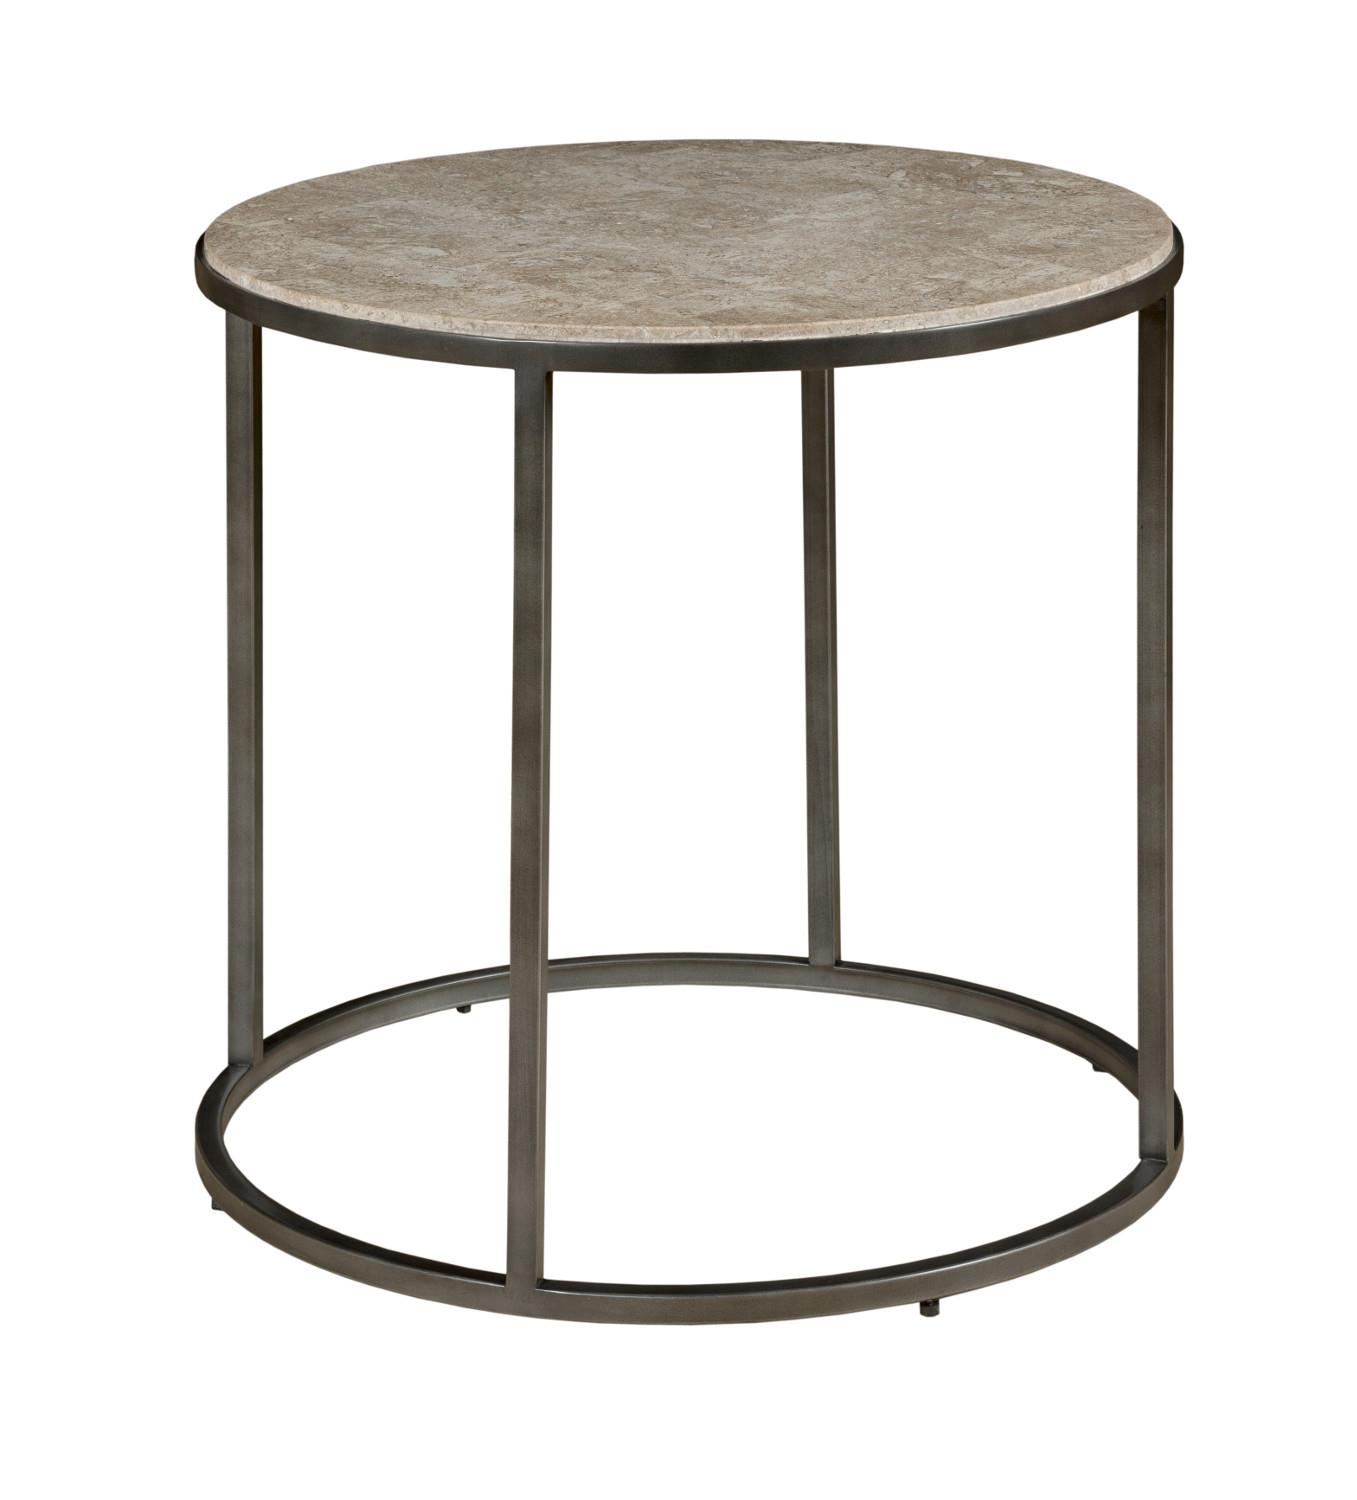 Hammary Modern Basics Round End Table                              - Item Number: 190-919